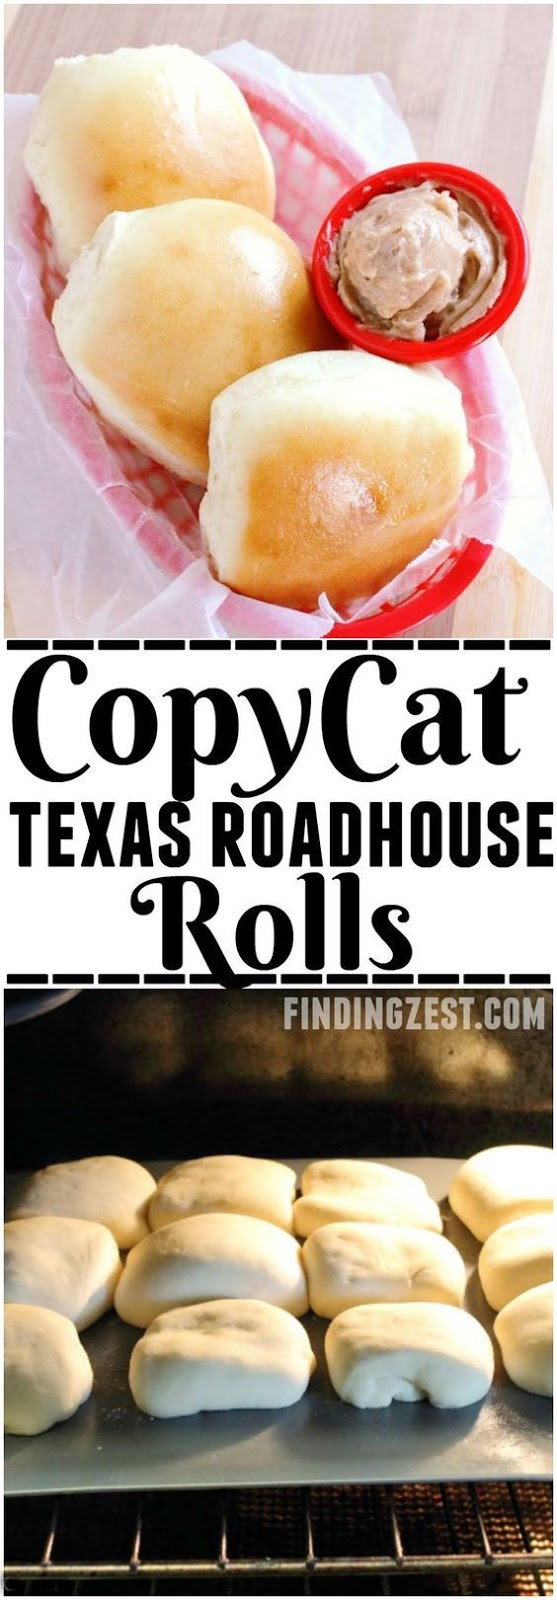 Copycat Texas Roadhouse Rolls and Cinnamon Butter Recipe #Copycat #Texas #Roadhouse #Rolls #Cinnamon #Butter #HEALTHYFOOD #EASYRECIPES #DINNER #LAUCH #DELICIOUS #EASY #HOLIDAYS #RECIPE #DESSERTS #SPECIALDIET #WORLDCUISINE #CAKE #APPETIZERS #HEALTHYRECIPES #DRINKS #COOKINGMETHOD #ITALIANRECIPES #MEAT #VEGANRECIPES #COOKIES #PASTA #FRUIT #SALAD #SOUPAPPETIZERS #NONALCOHOLICDRINKS #MEALPLANNING #VEGETABLES #SOUP #PASTRY #CHOCOLATE #DAIRY #ALCOHOLICDRINKS #BULGURSALAD #BAKING #SNACKS #BEEFRECIPES #MEATAPPETIZERS #MEXICANRECIPES #BREAD #ASIANRECIPES #SEAFOODAPPETIZERS #MUFFINS #BREAKFASTANDBRUNCH #CONDIMENTS #CUPCAKES #CHEESE #CHICKENRECIPES #PIE #COFFEE #NOBAKEDESSERTS #HEALTHYSNACKS #SEAFOOD #GRAIN #LUNCHESDINNERS #MEXICAN #QUICKBREAD #LIQUOR